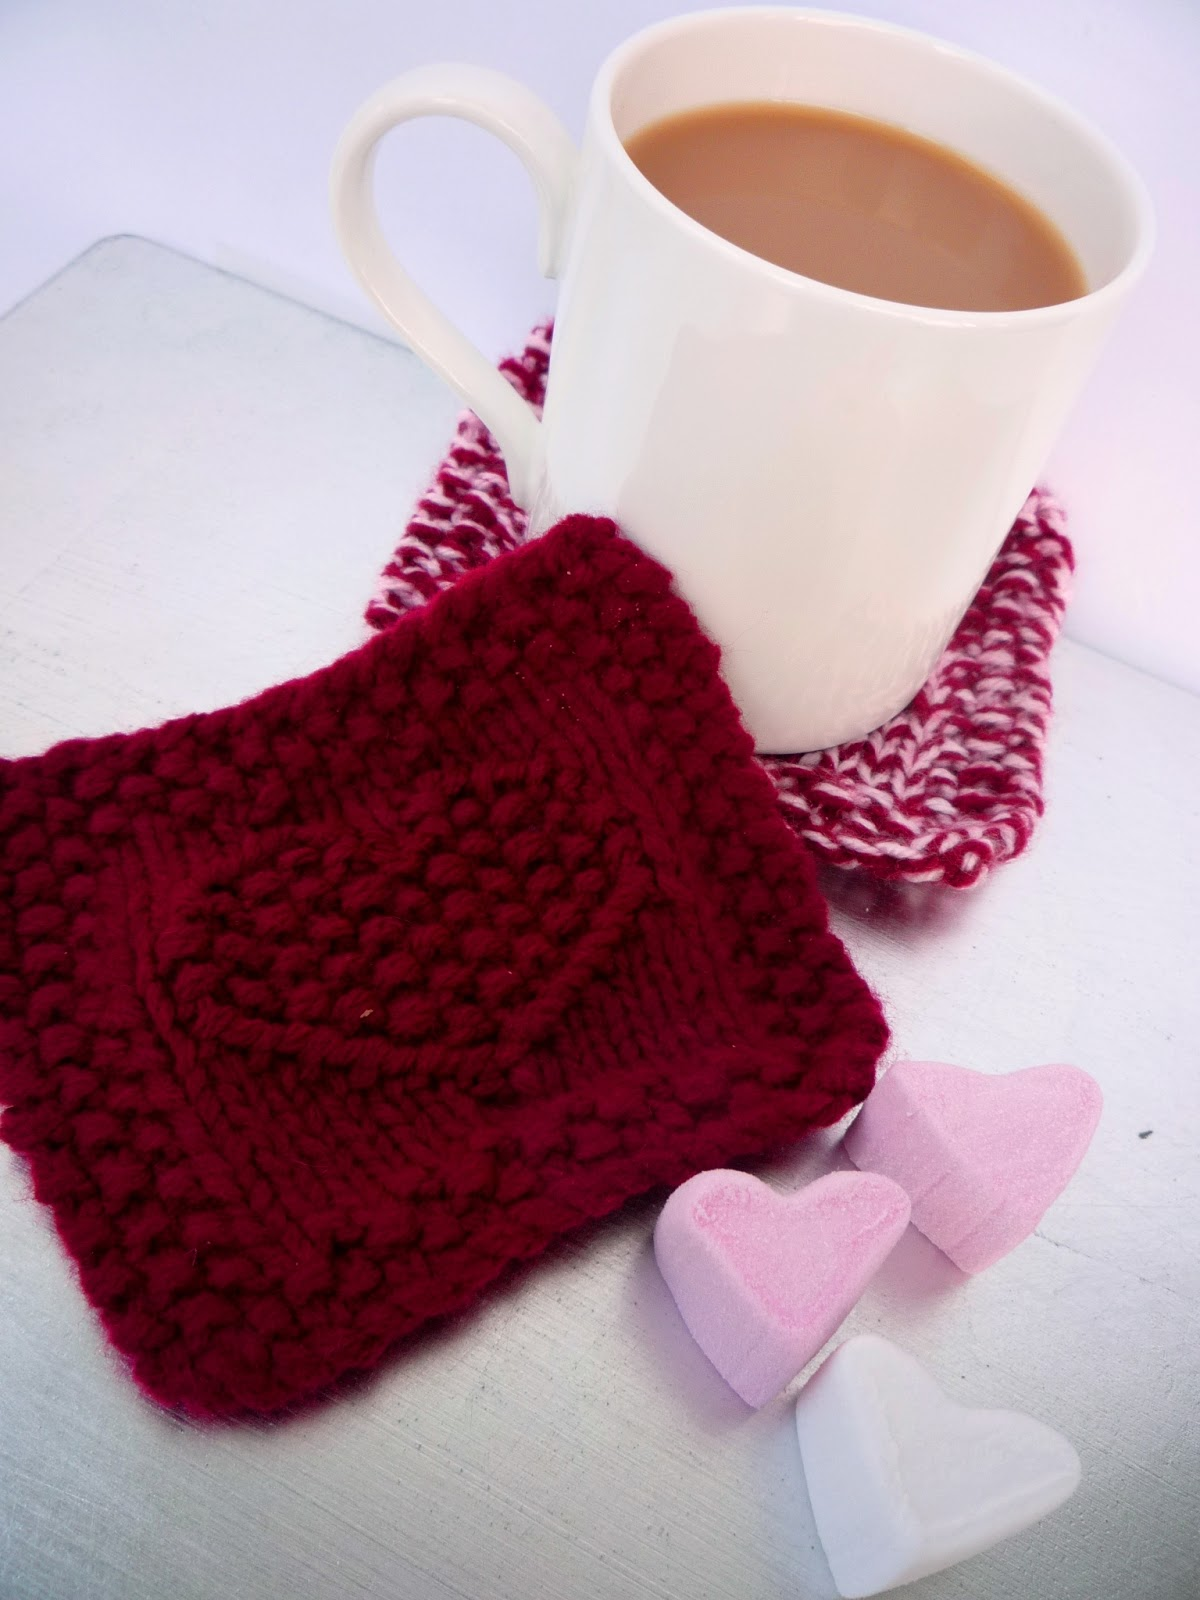 the Creations of Crazy Dazy: heart coaster pattern